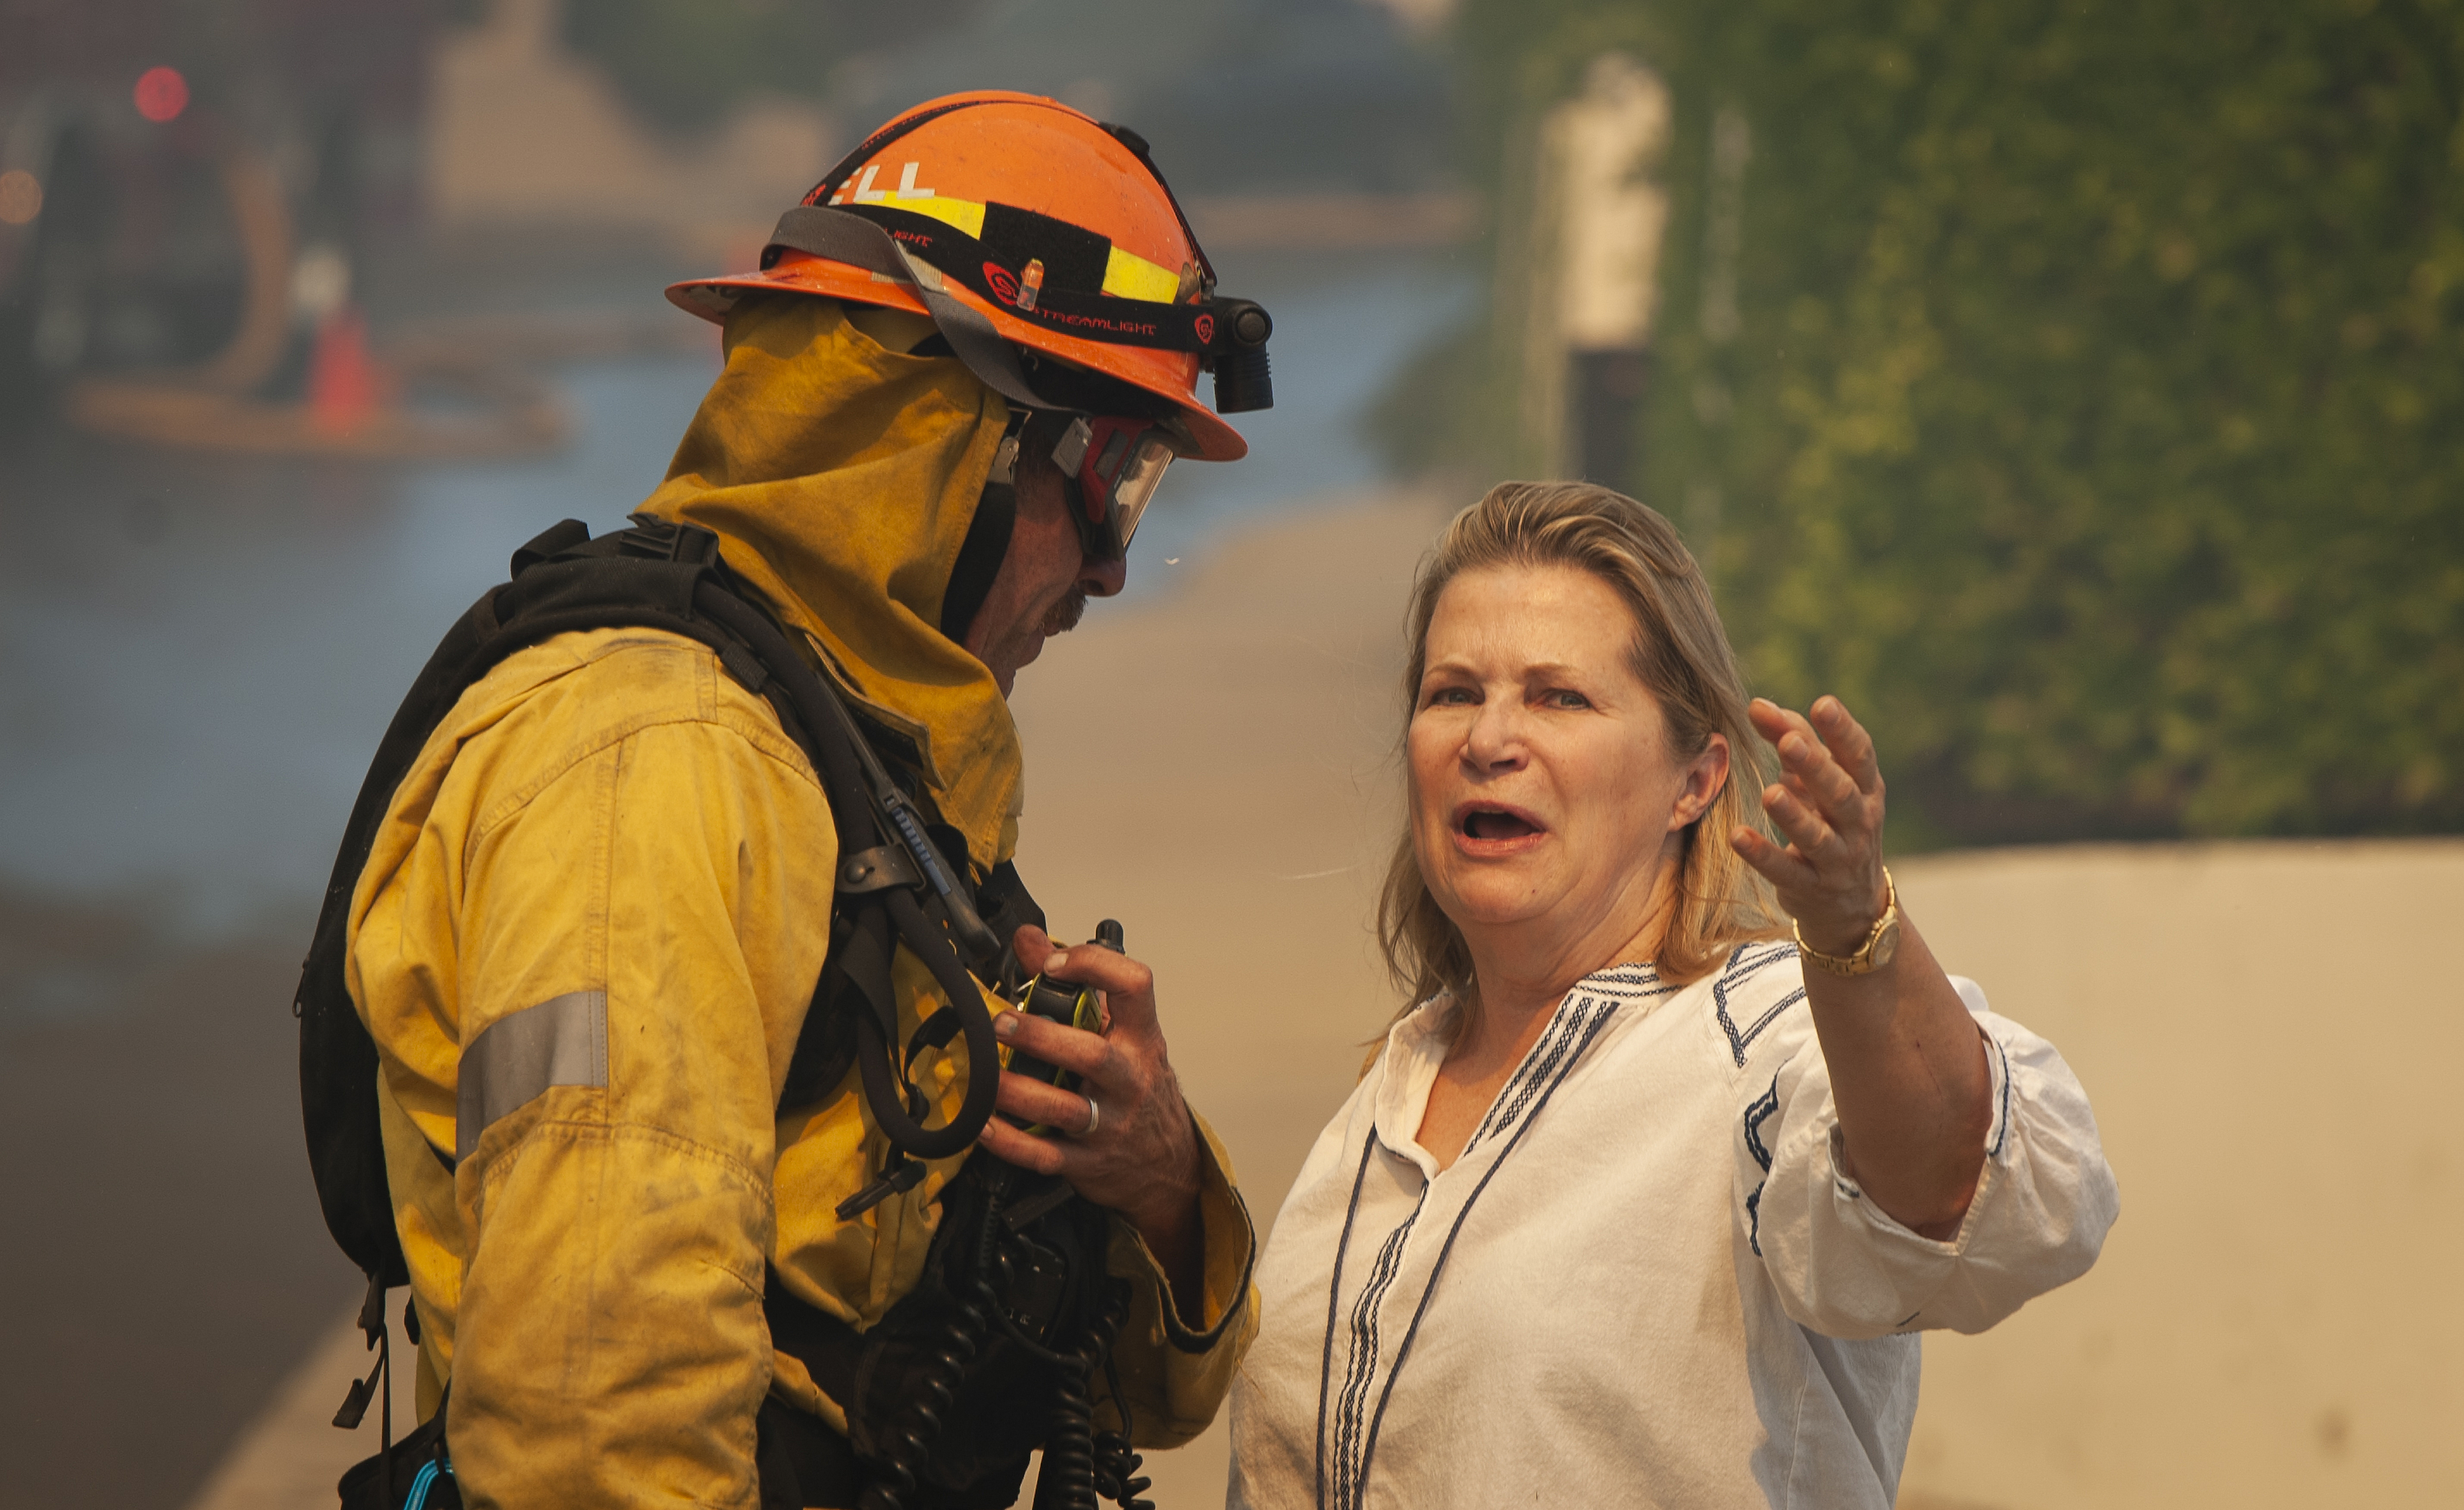 Strong winds to fuel critical fire risk in California